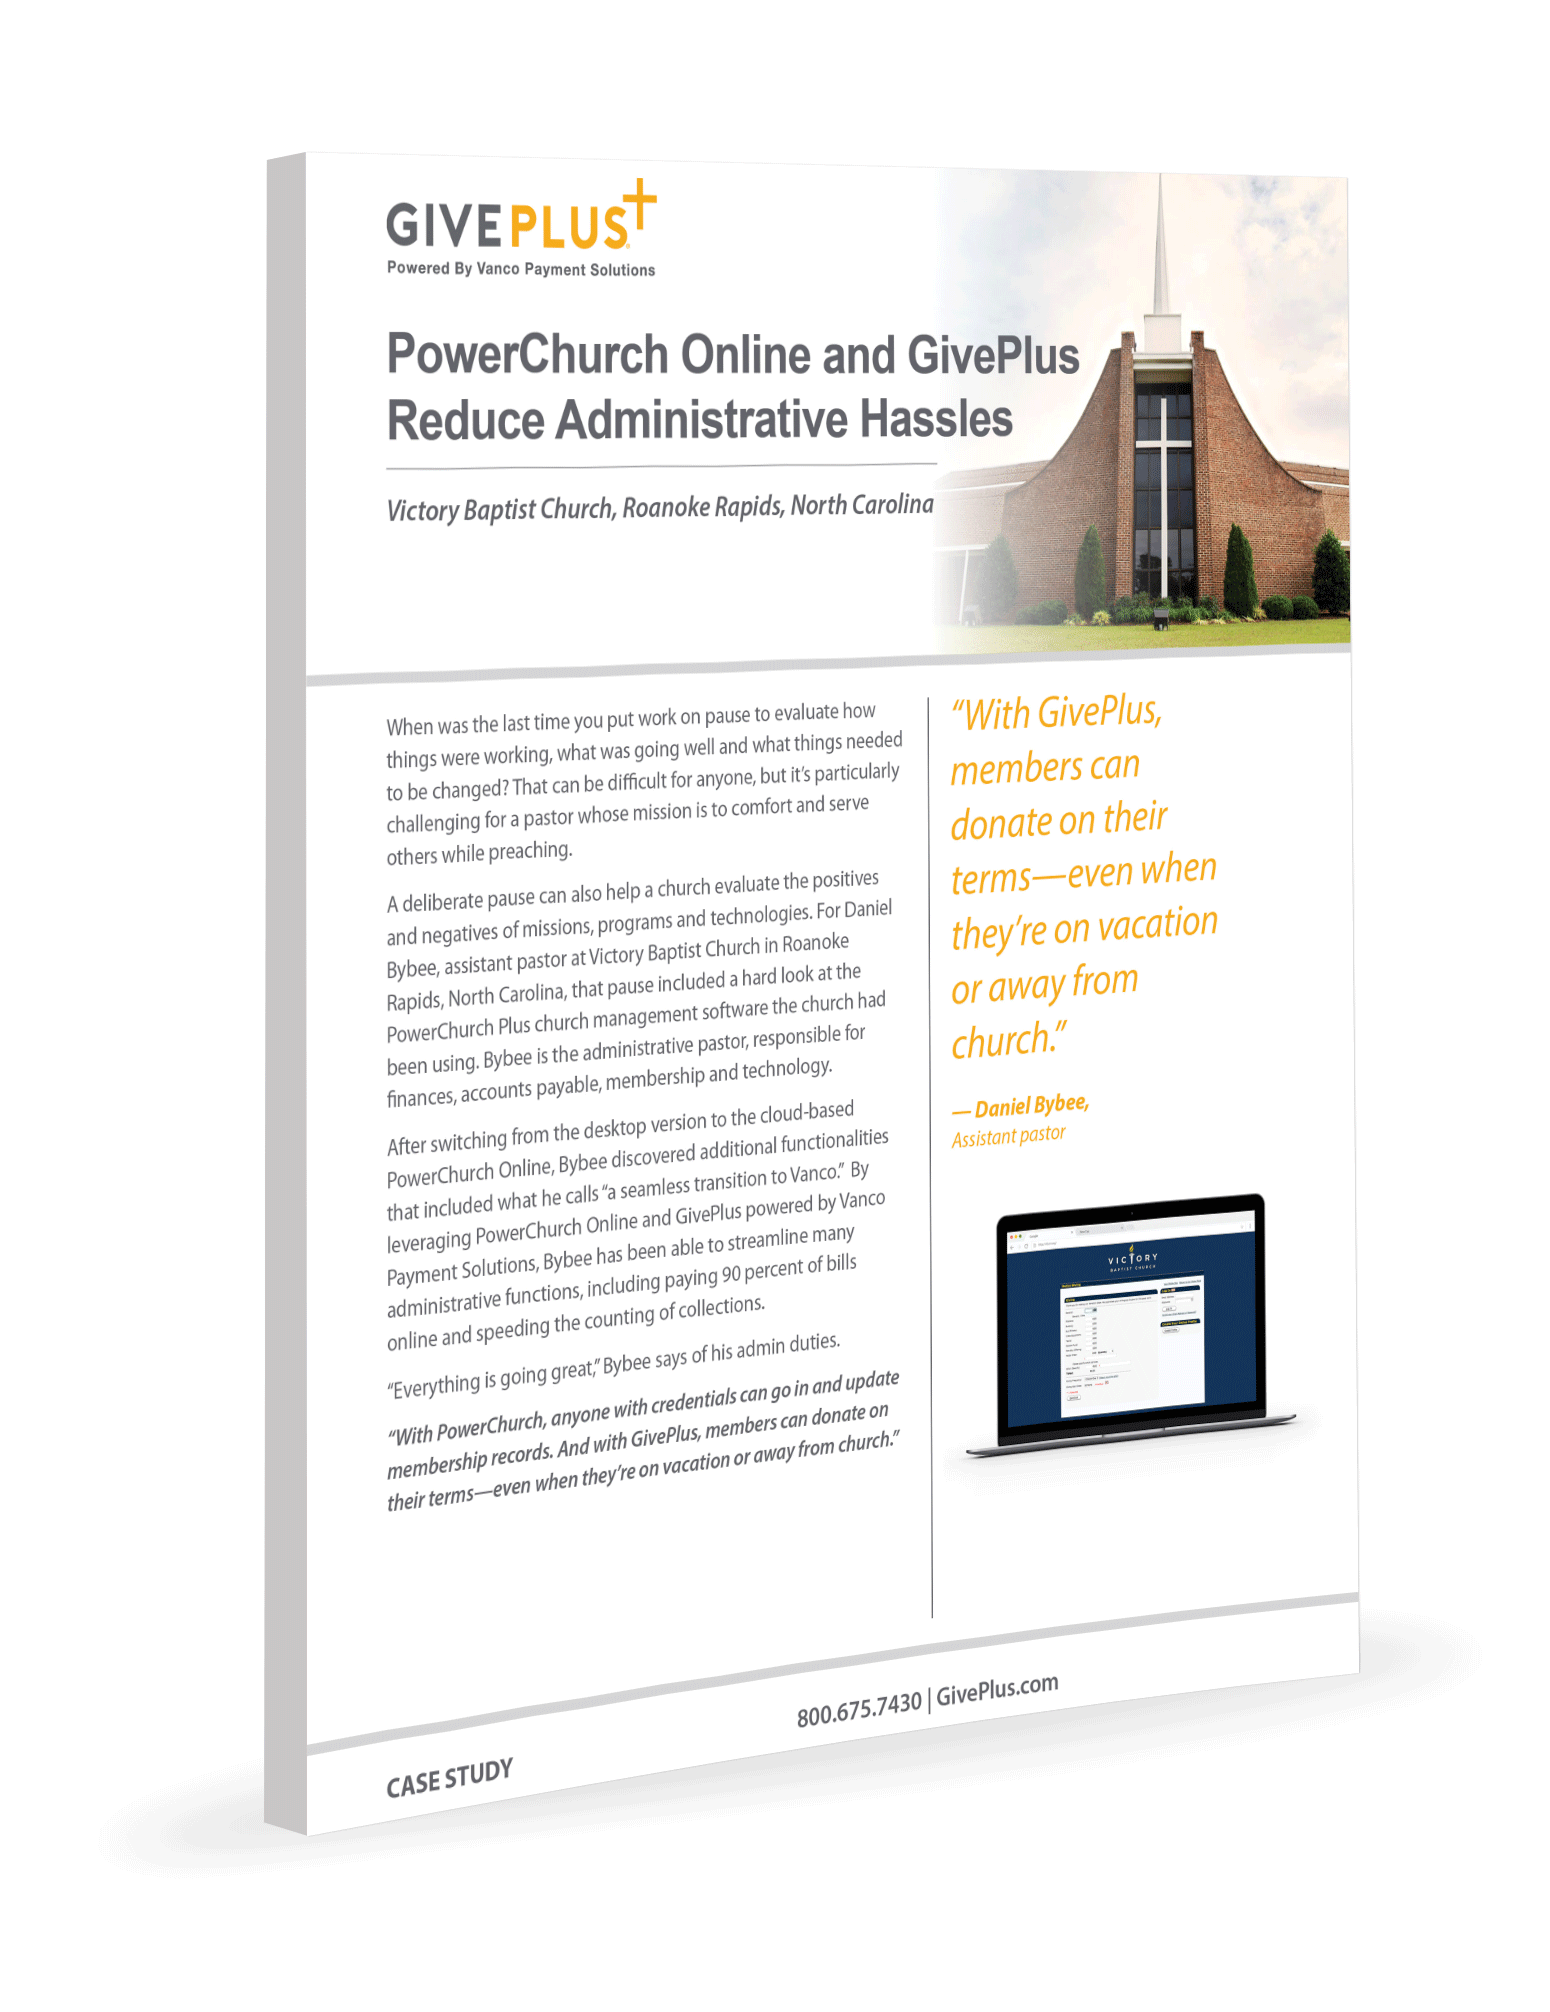 PowerChurch Online and GivePlus Reduce Administrative Hassles